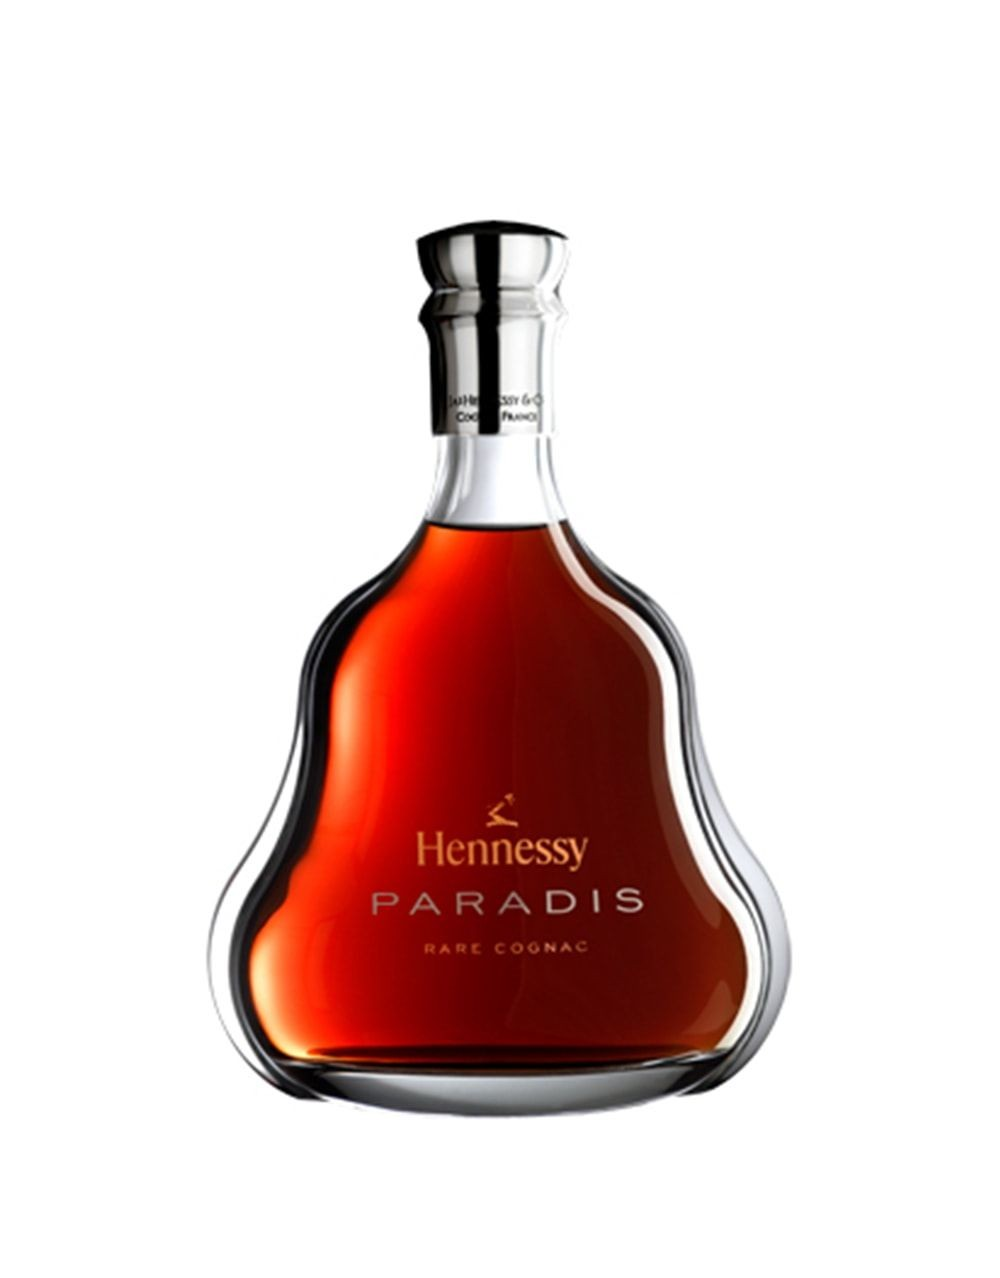 Hennessy Paradis Cognac Buy Online Or Send As A Gift